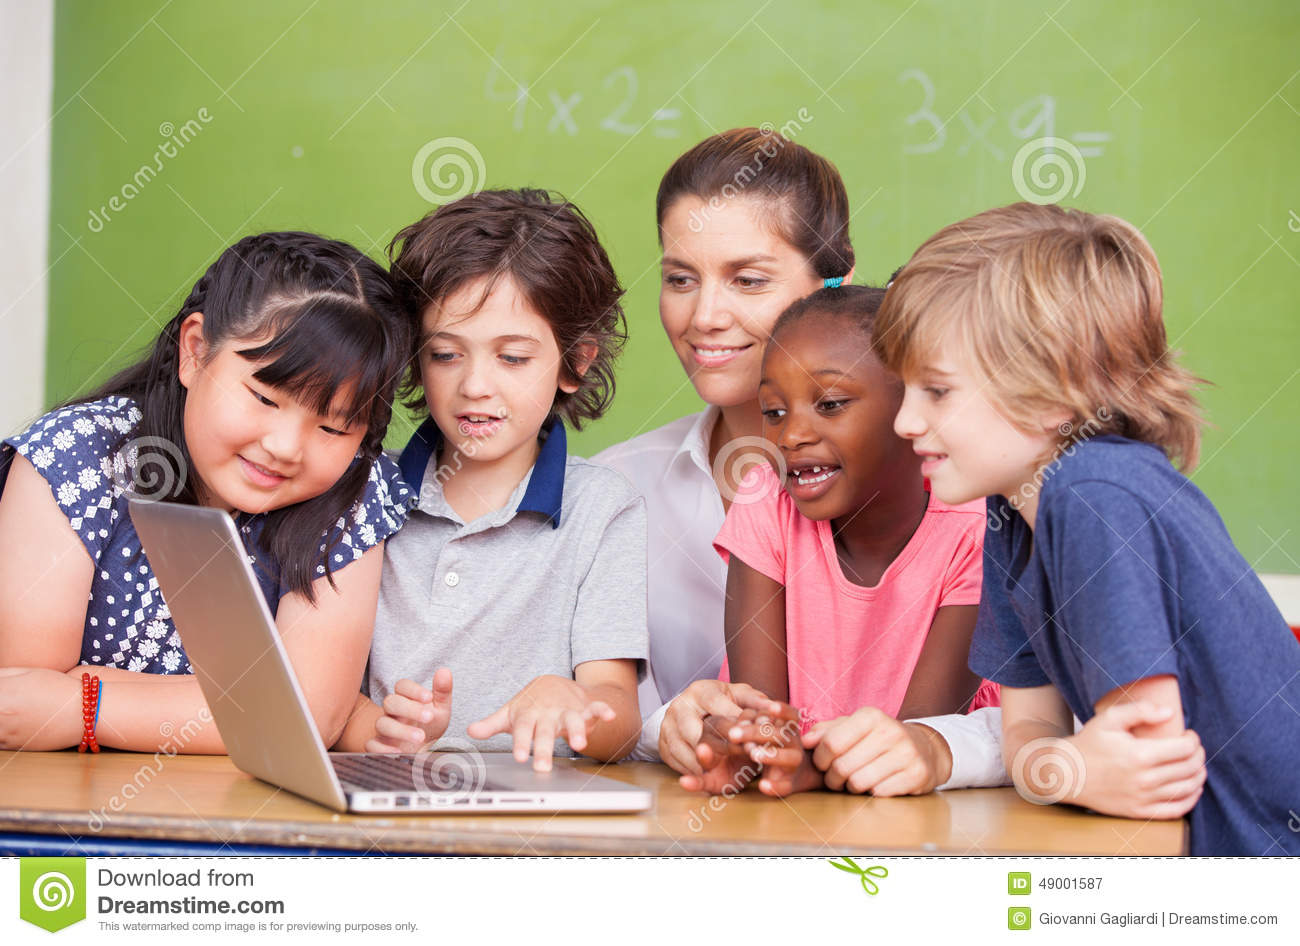 Is their a contest for free laptops for educational use?